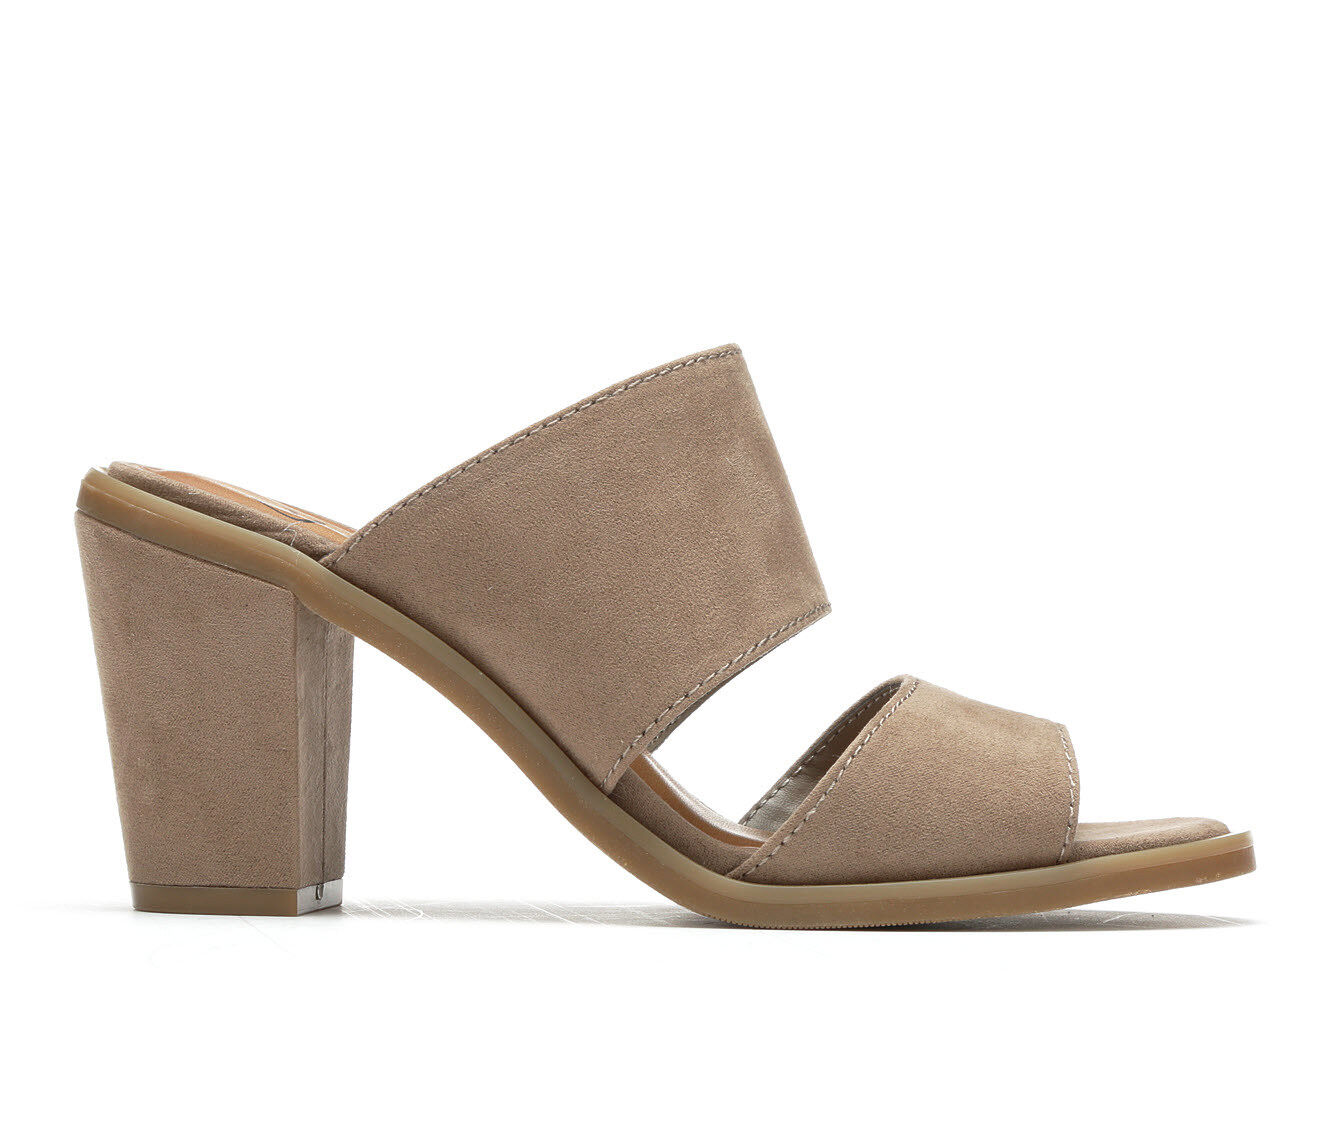 ebay cheap online sale 2015 Women's Y-Not Eisley Heeled Sandals factory outlet cheap price cheap sale low shipping fee efgGZ4b